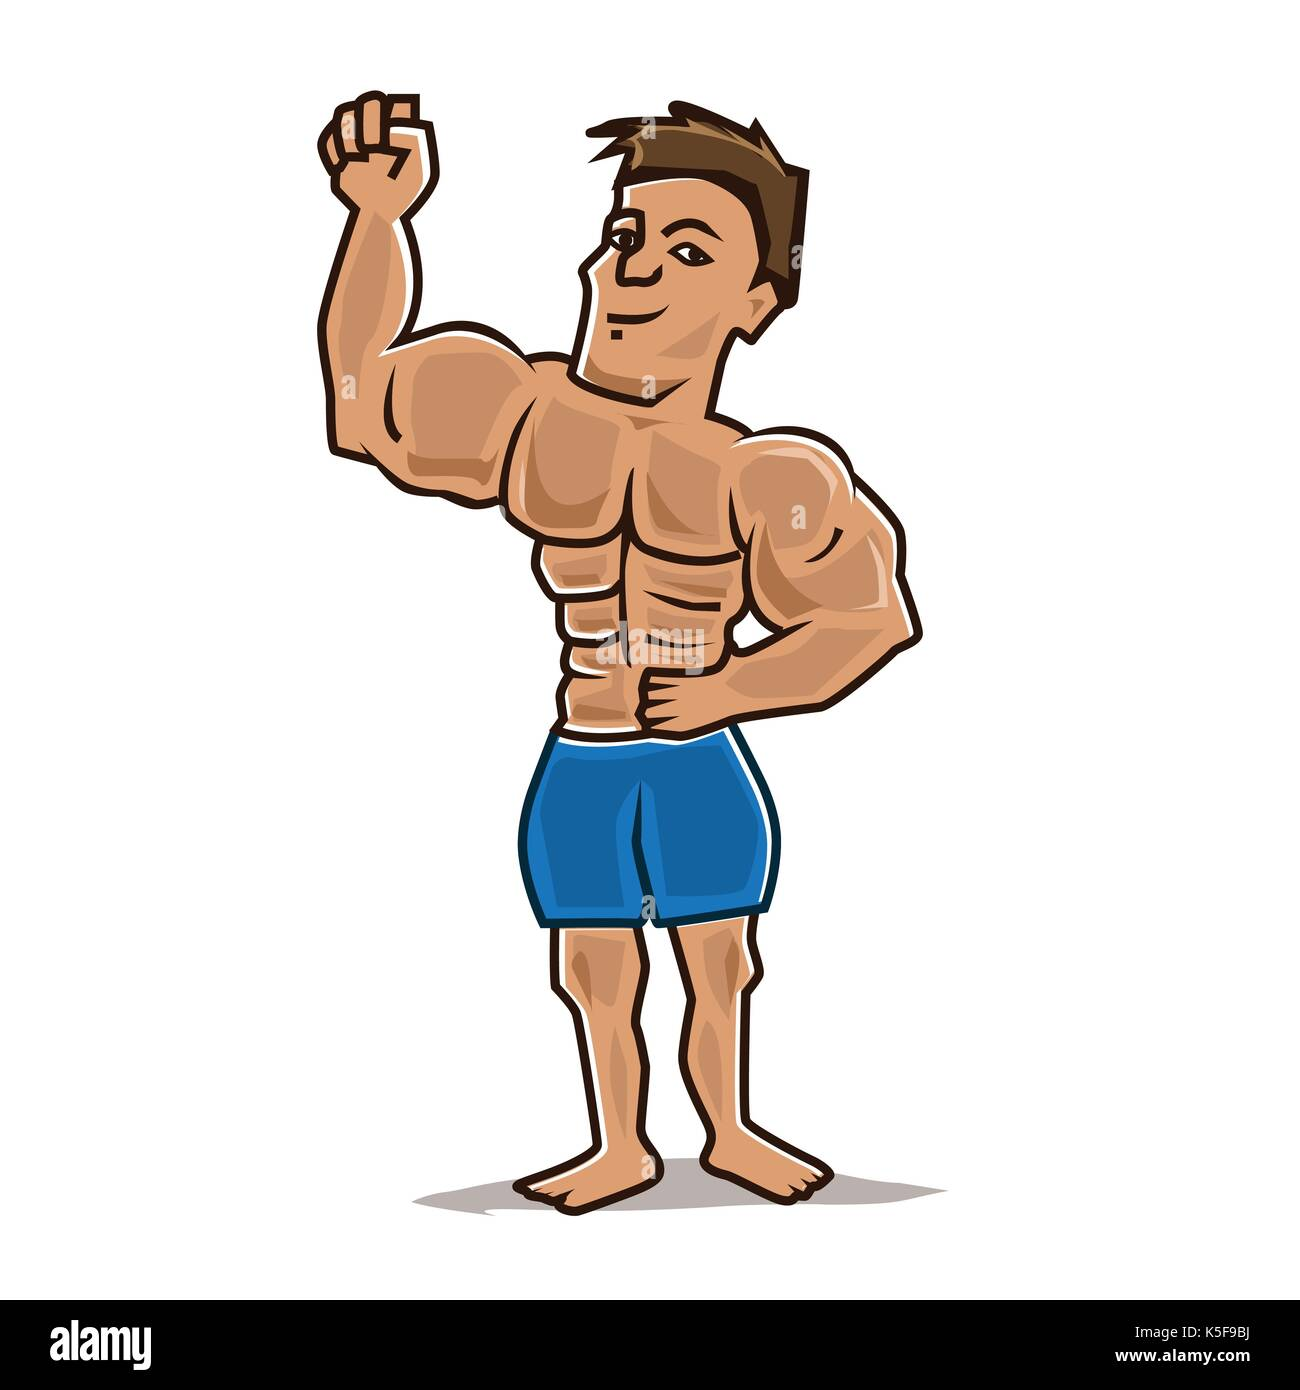 Cartoon bodybuilder stock photos cartoon bodybuilder - Cartoon body builder ...